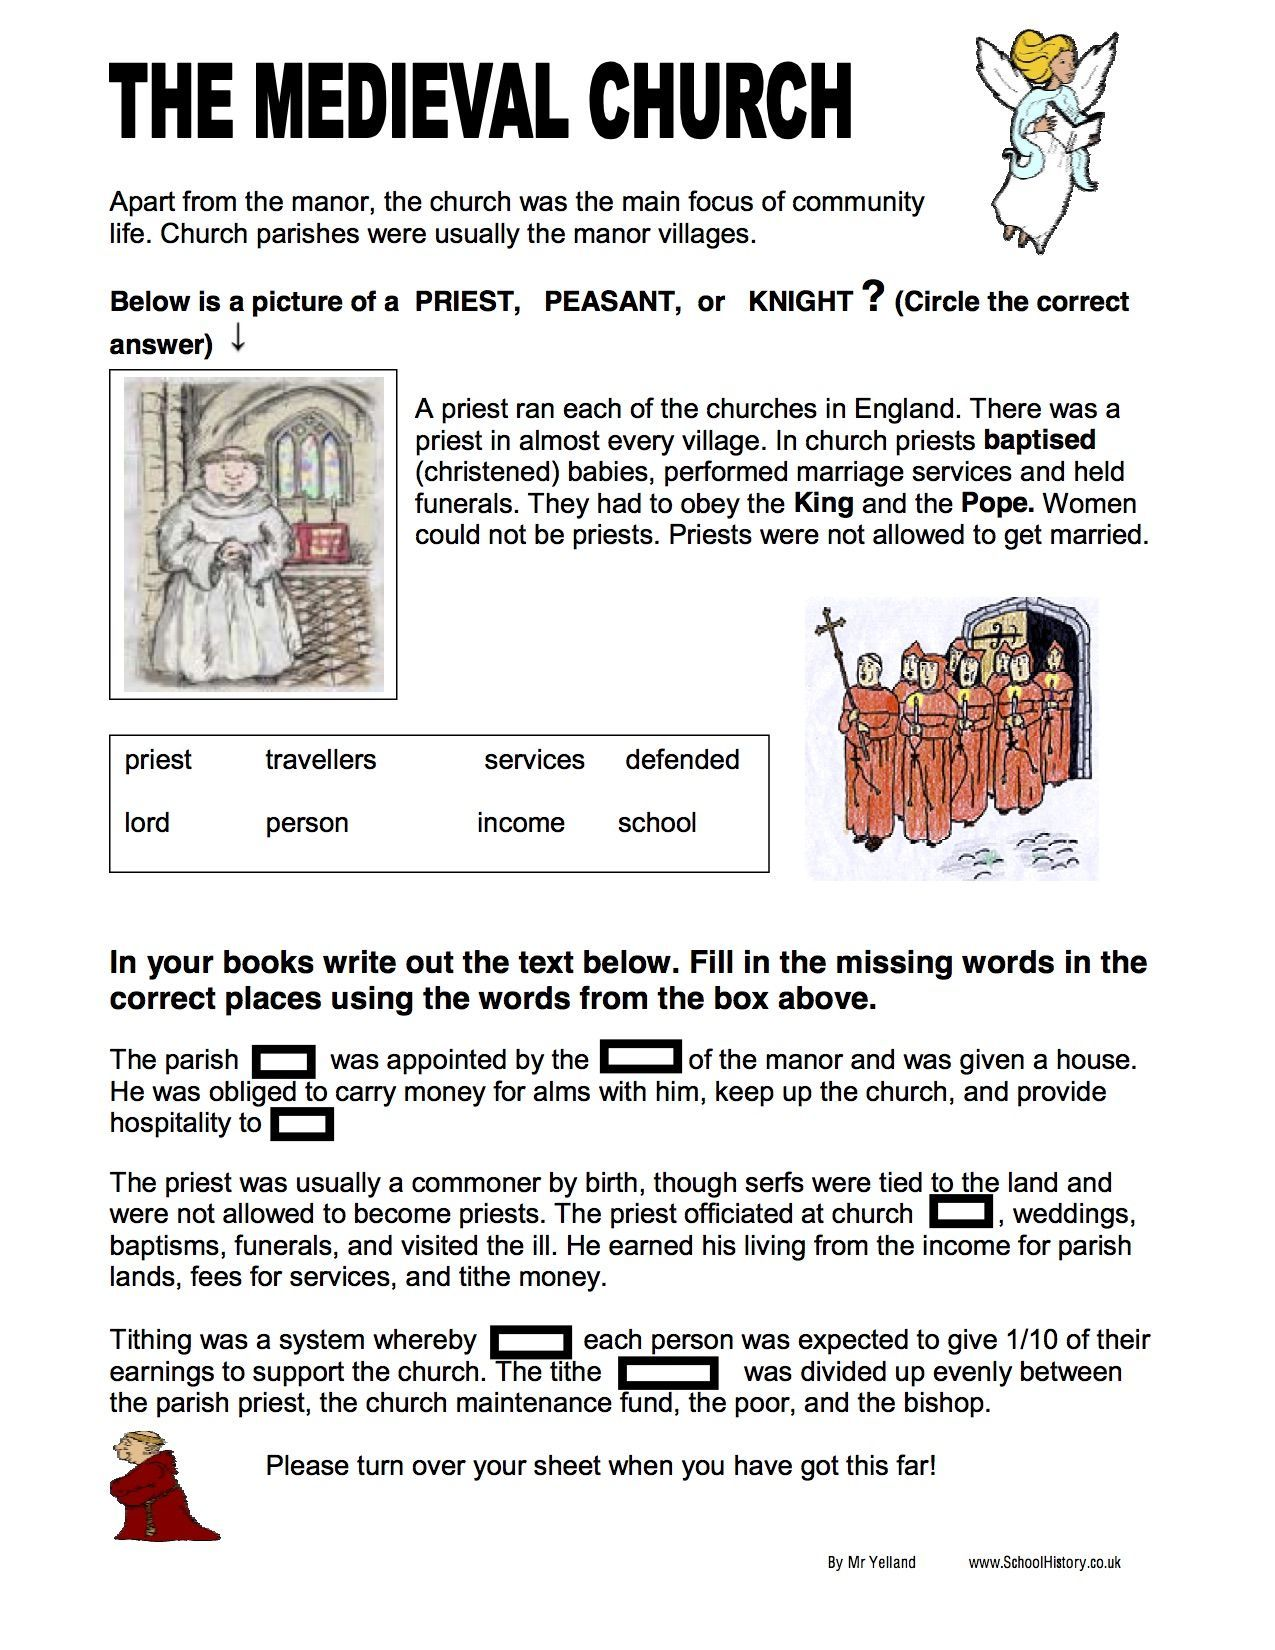 Free History Worksheets Ks3 Amp Ks4 Lesson Plans Amp